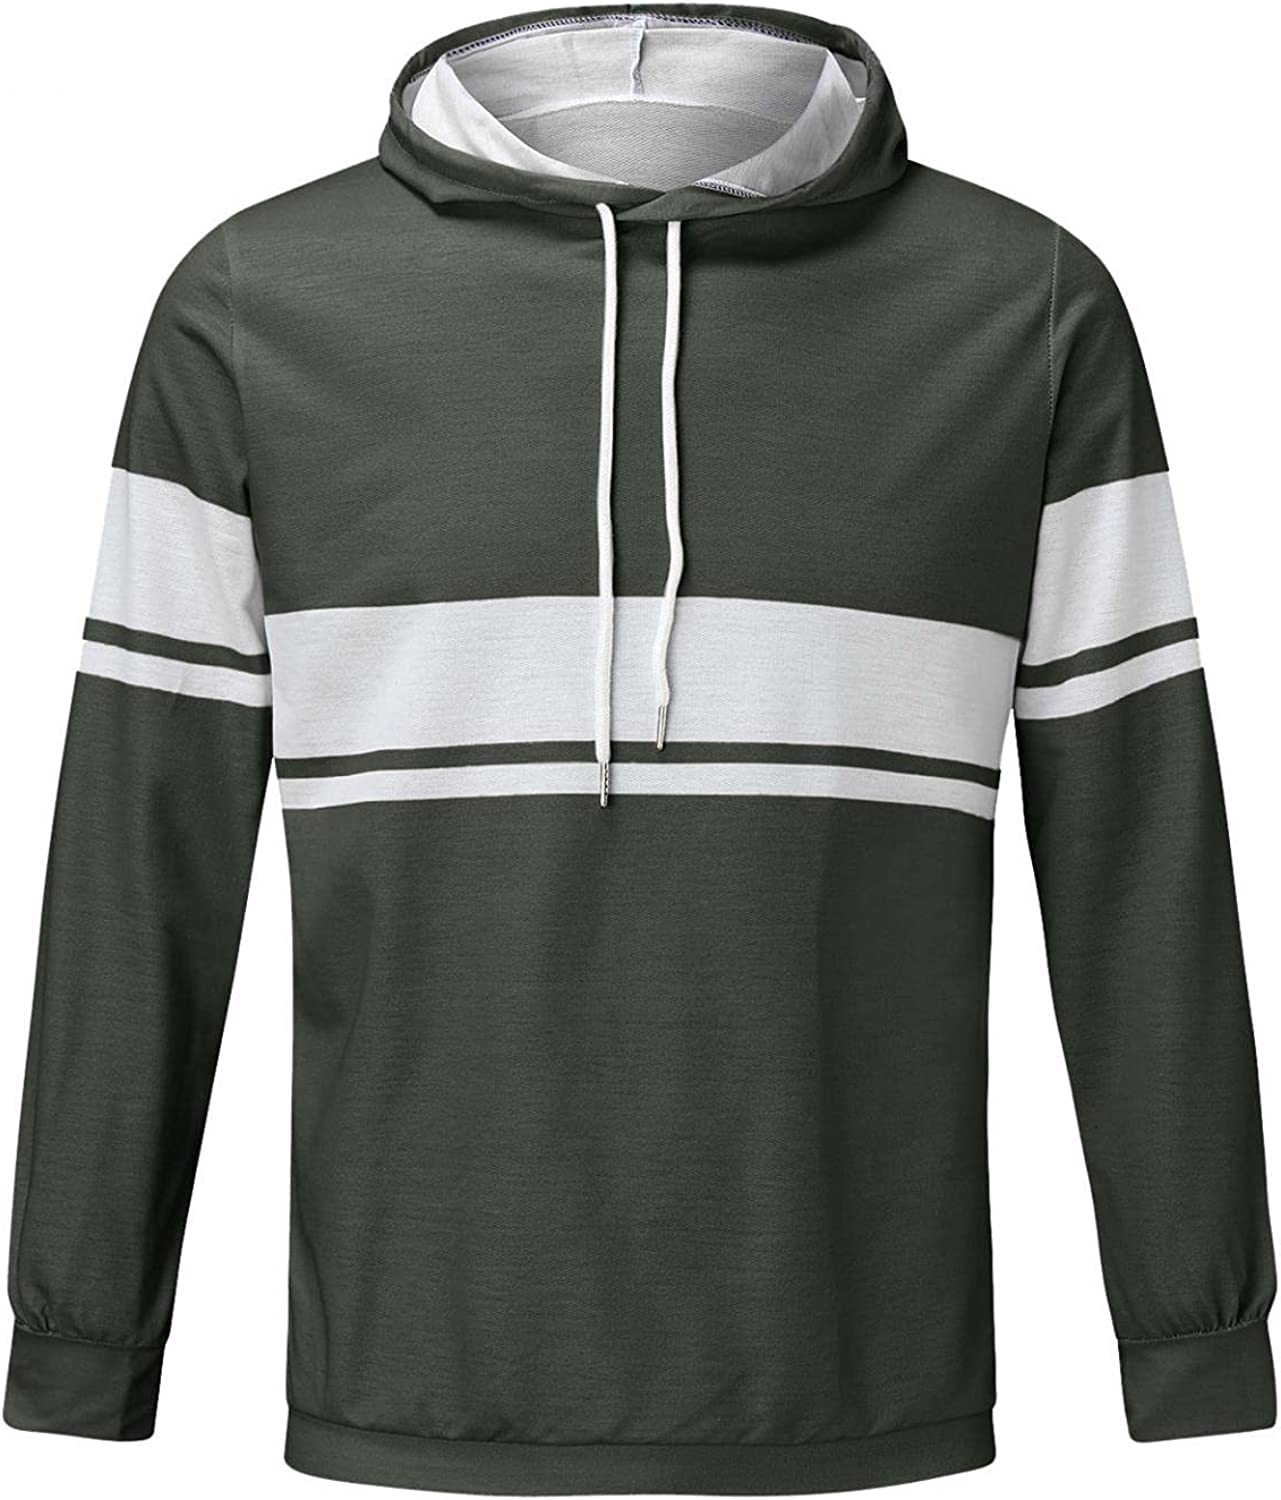 Huangse Workout Hoodies for Men Casual T-Shirts Striped Color Block Pullover Hoodies with Drawstring